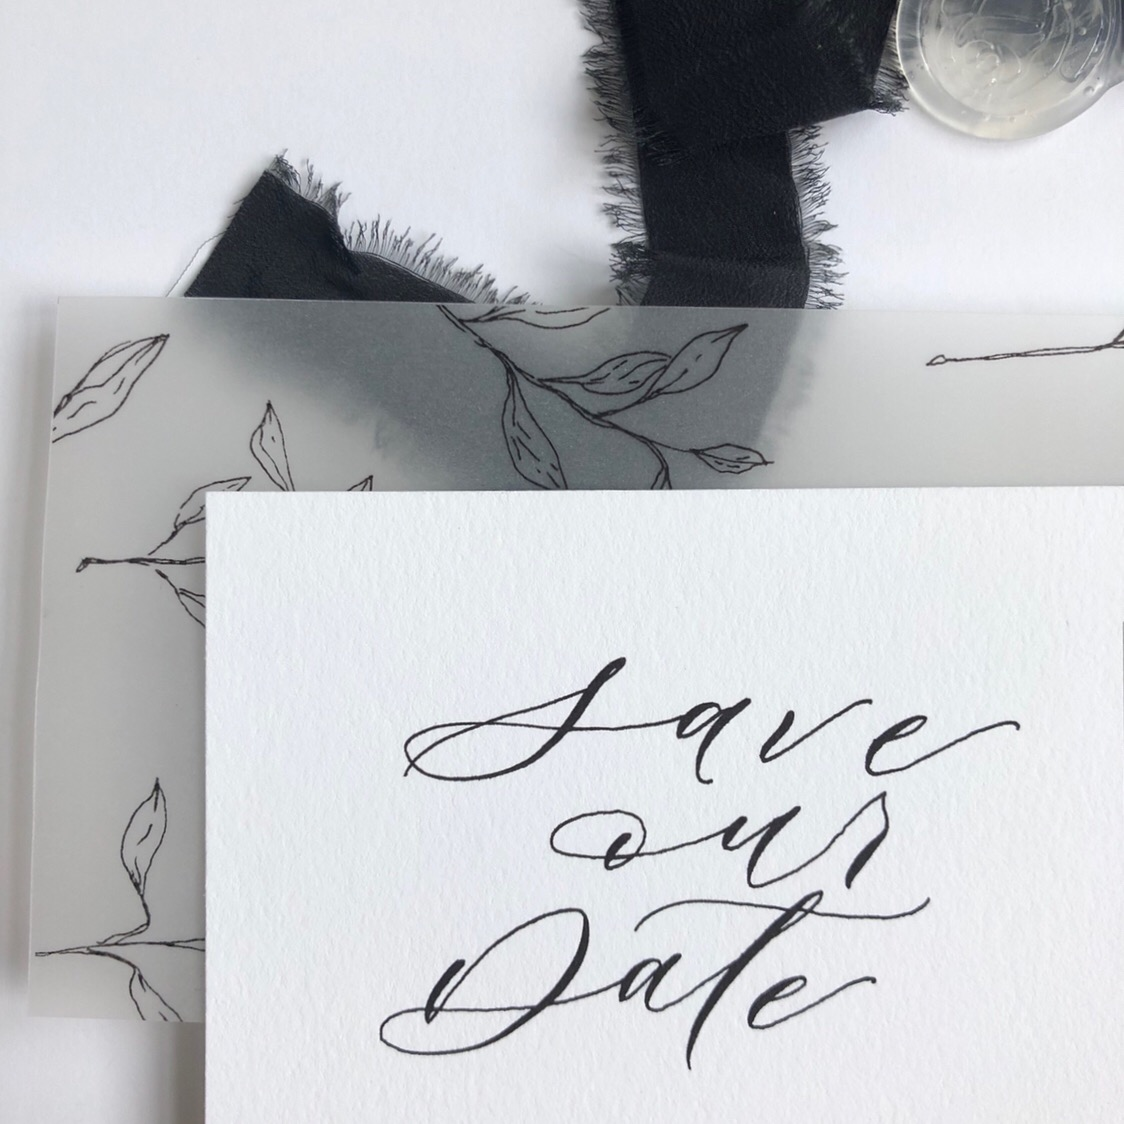 save-our-date-calligraphy.jpg